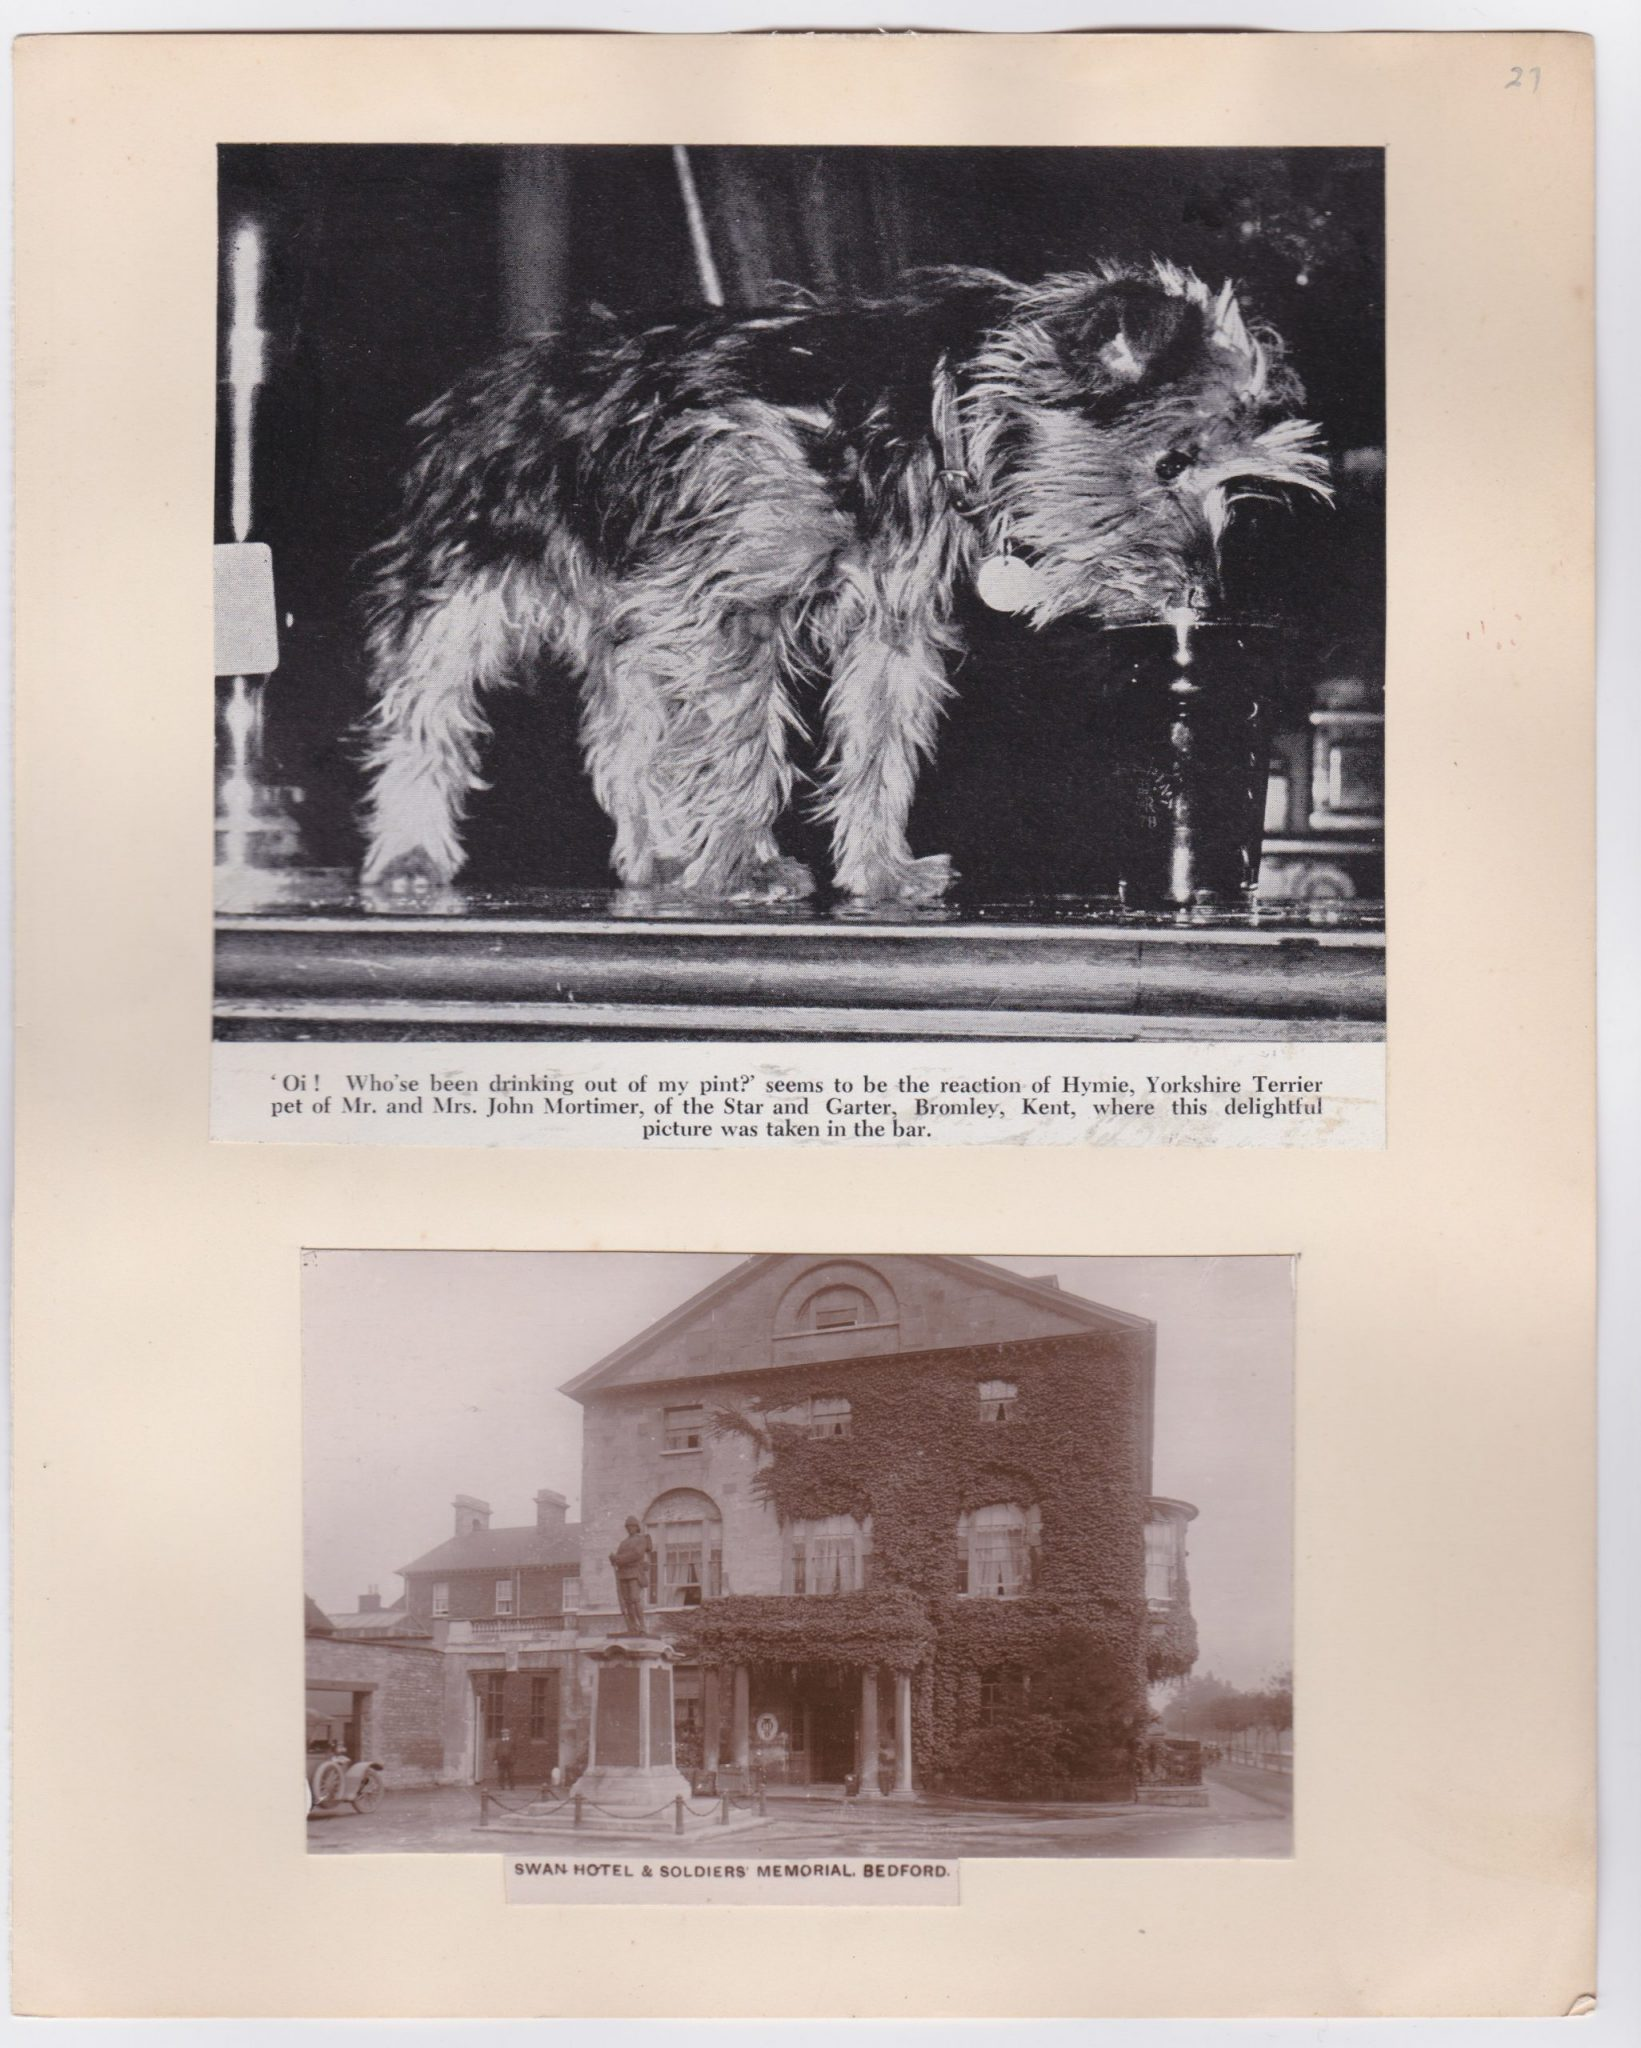 One old postcard of the Swan Hotel Bedford and an image of a dog drinking a pint at the bar of the Star and Garter kent.